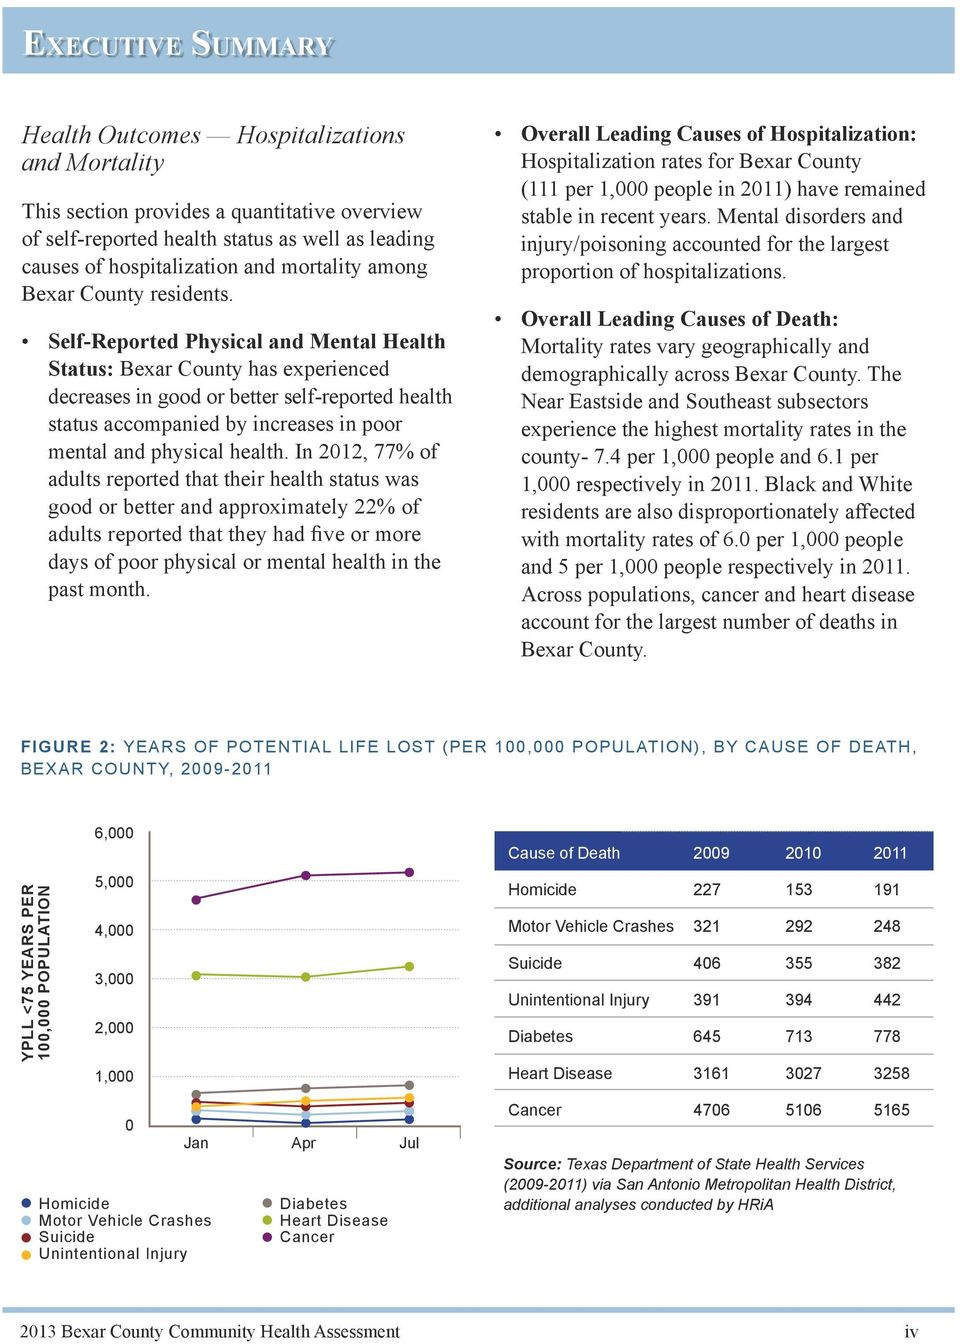 Self-Reported Physical and Mental Health Status: Bexar County has experienced decreases in good or better self-reported health status accompanied by increases in poor mental and physical health.